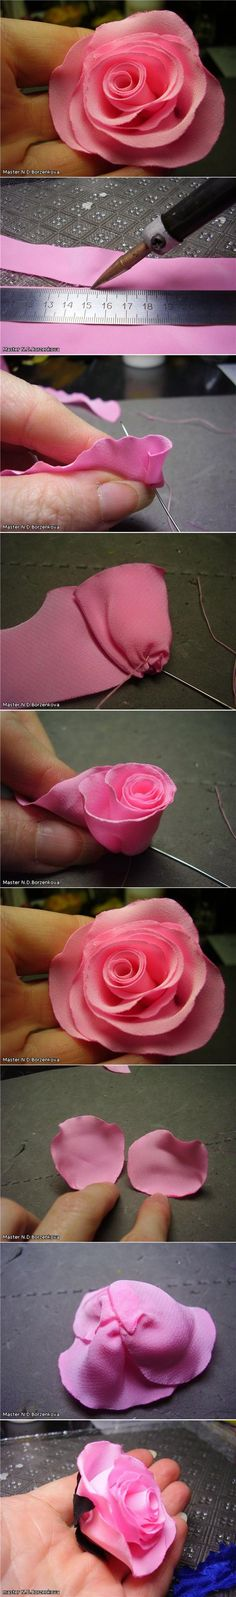 DIY Pretty Fabric Rose DIY Pretty Fabric Rose